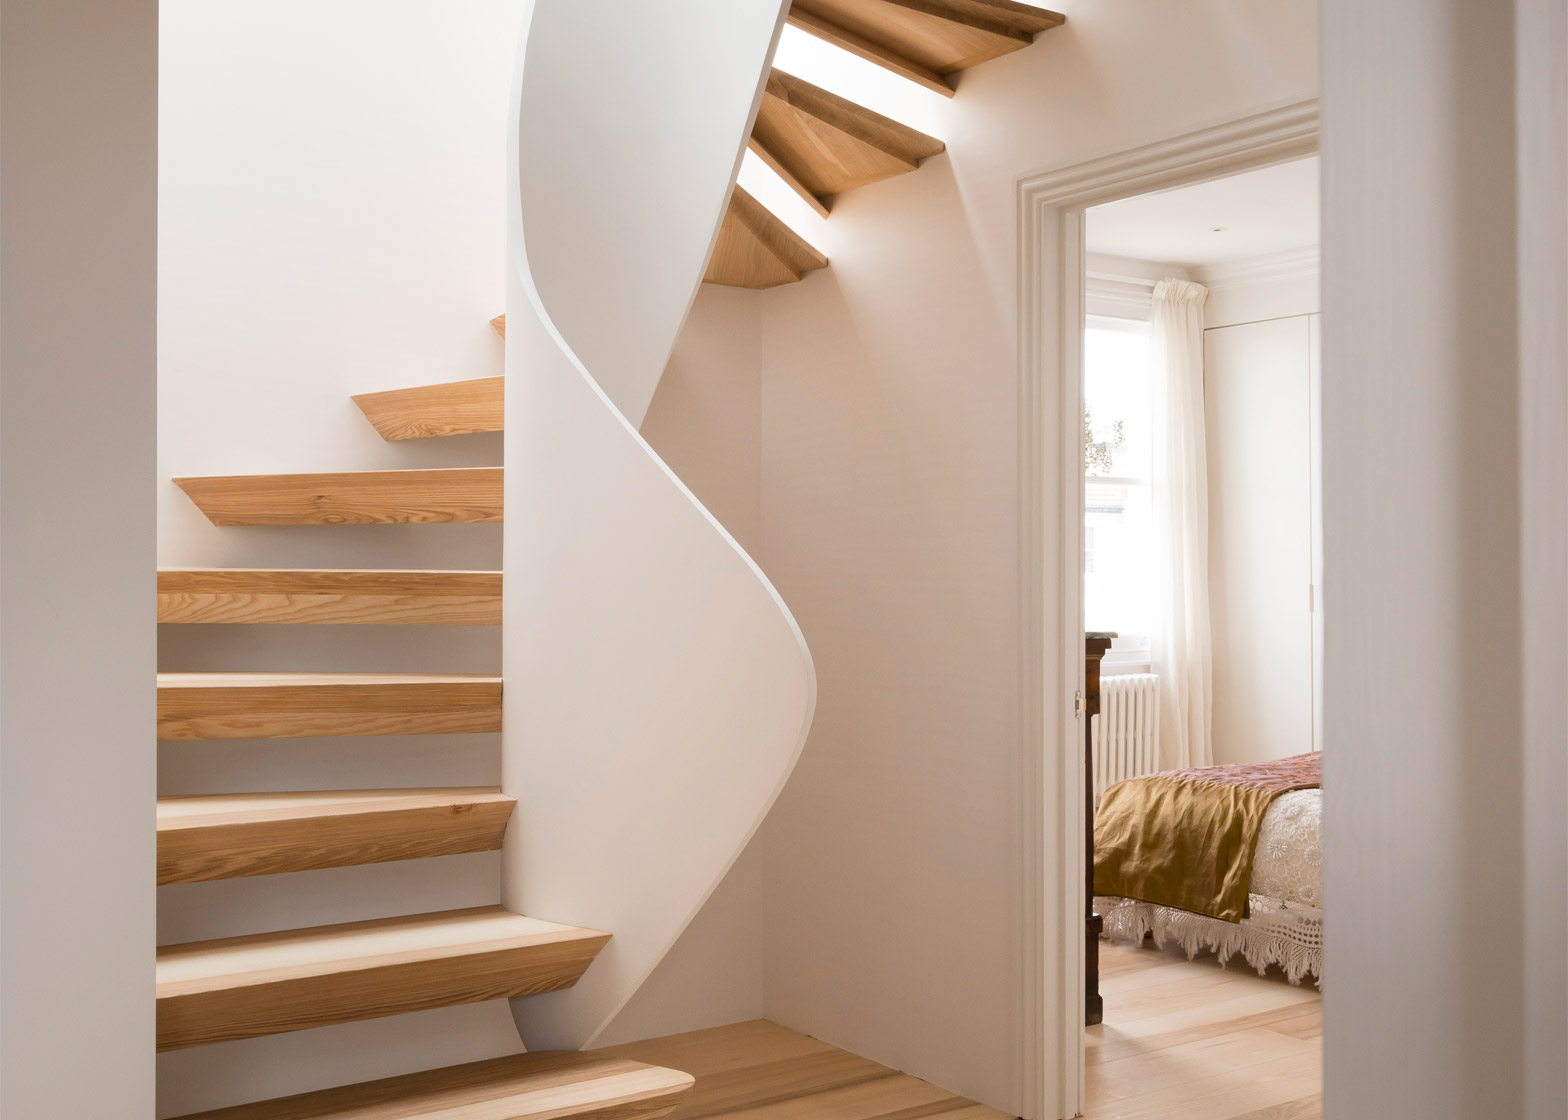 Twisted staircase features in Casa Vota renovation by 51 Architecture